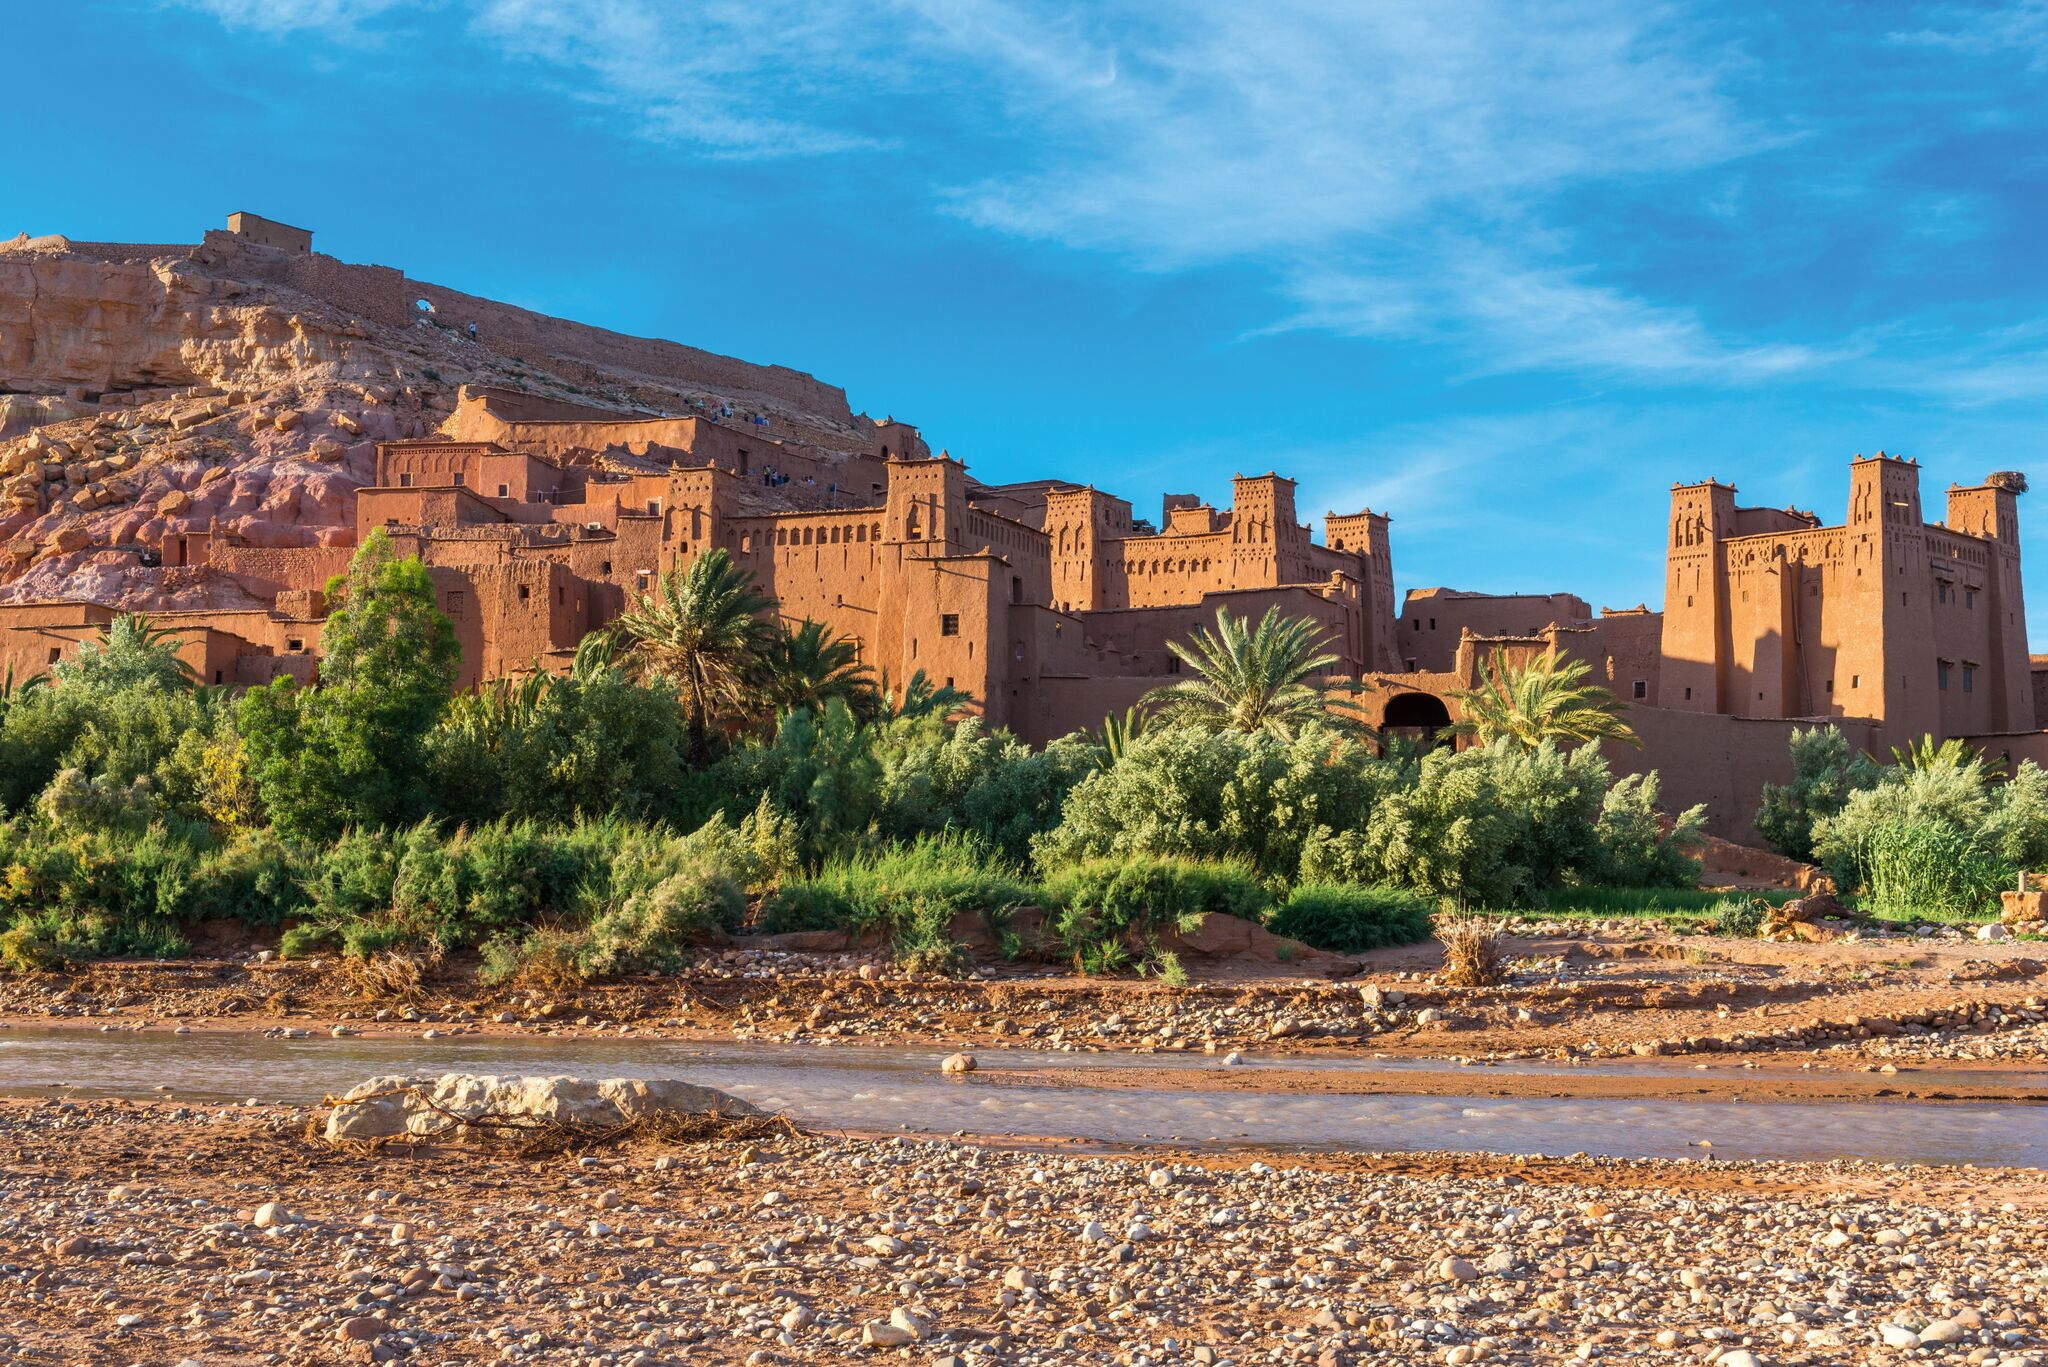 Marokko-it-ben-haddou.jpg